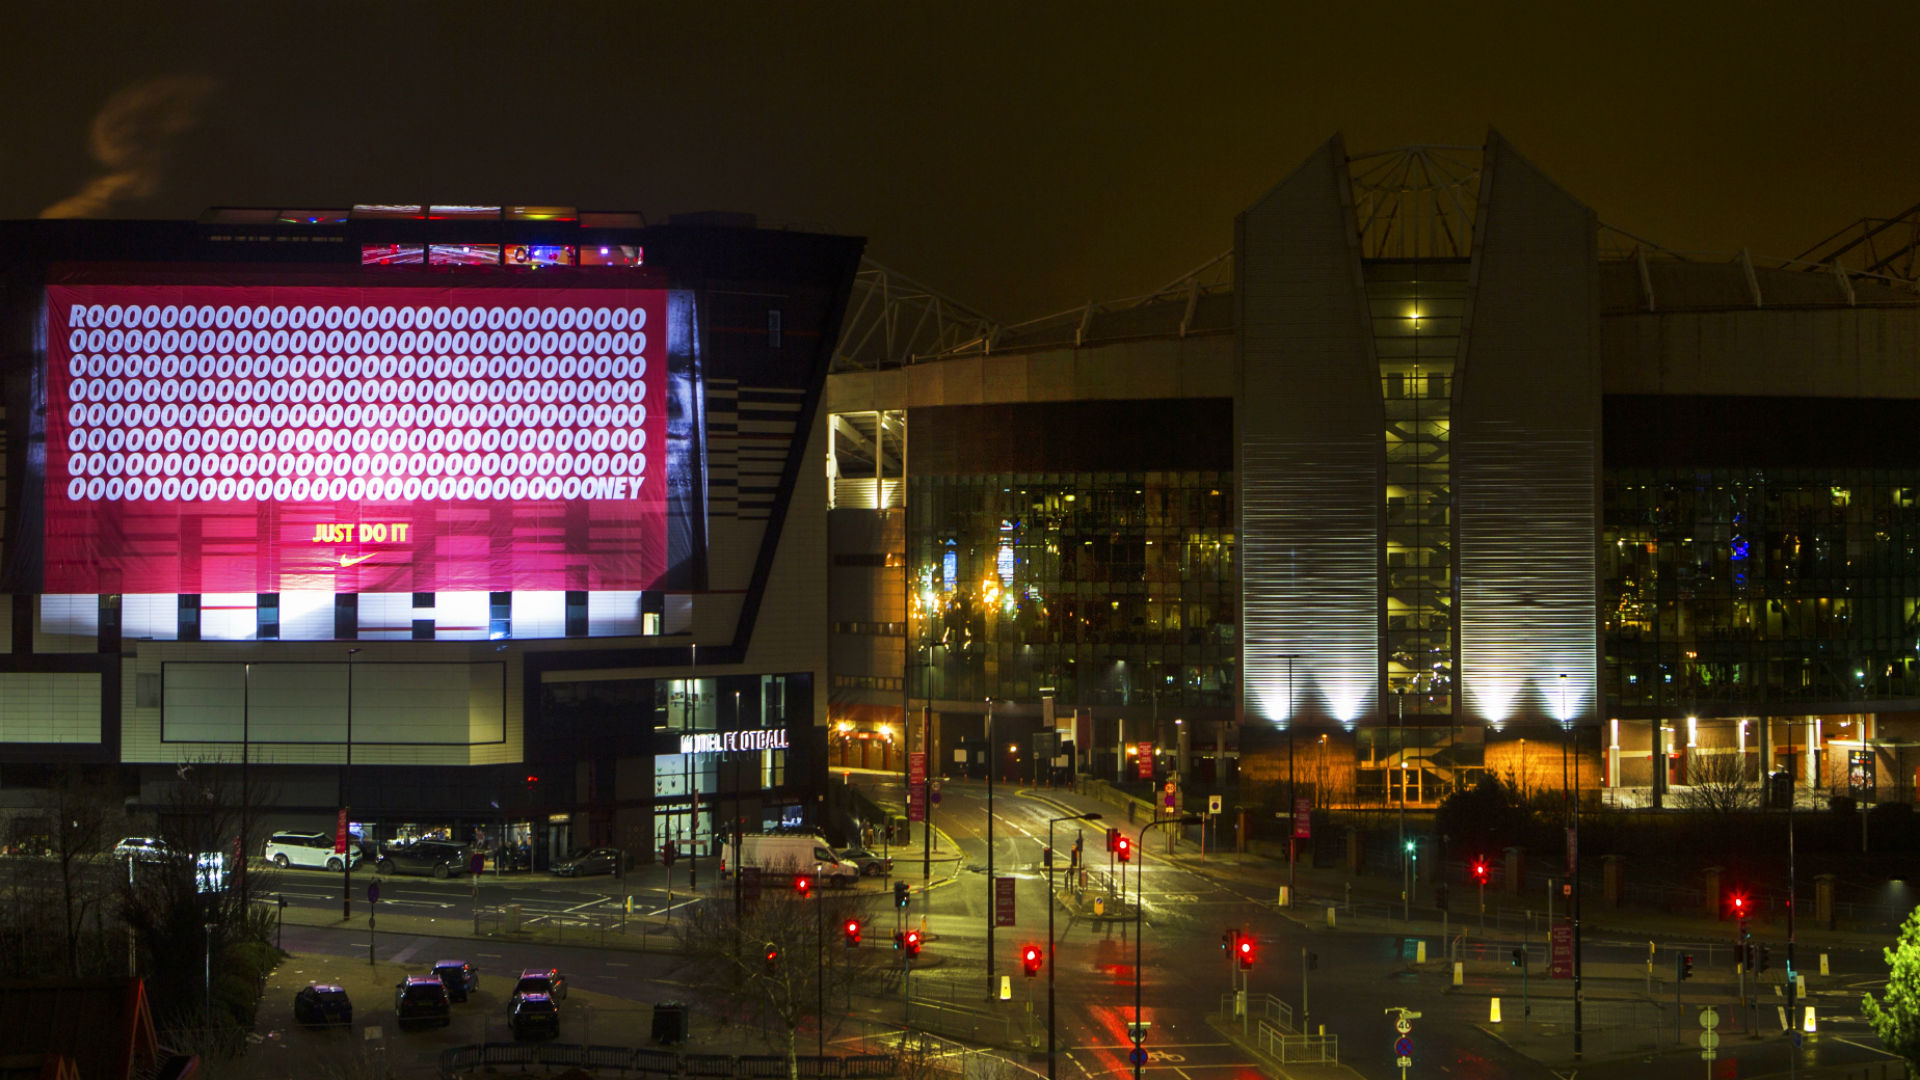 Old Trafford Manchester United Rooney tribute